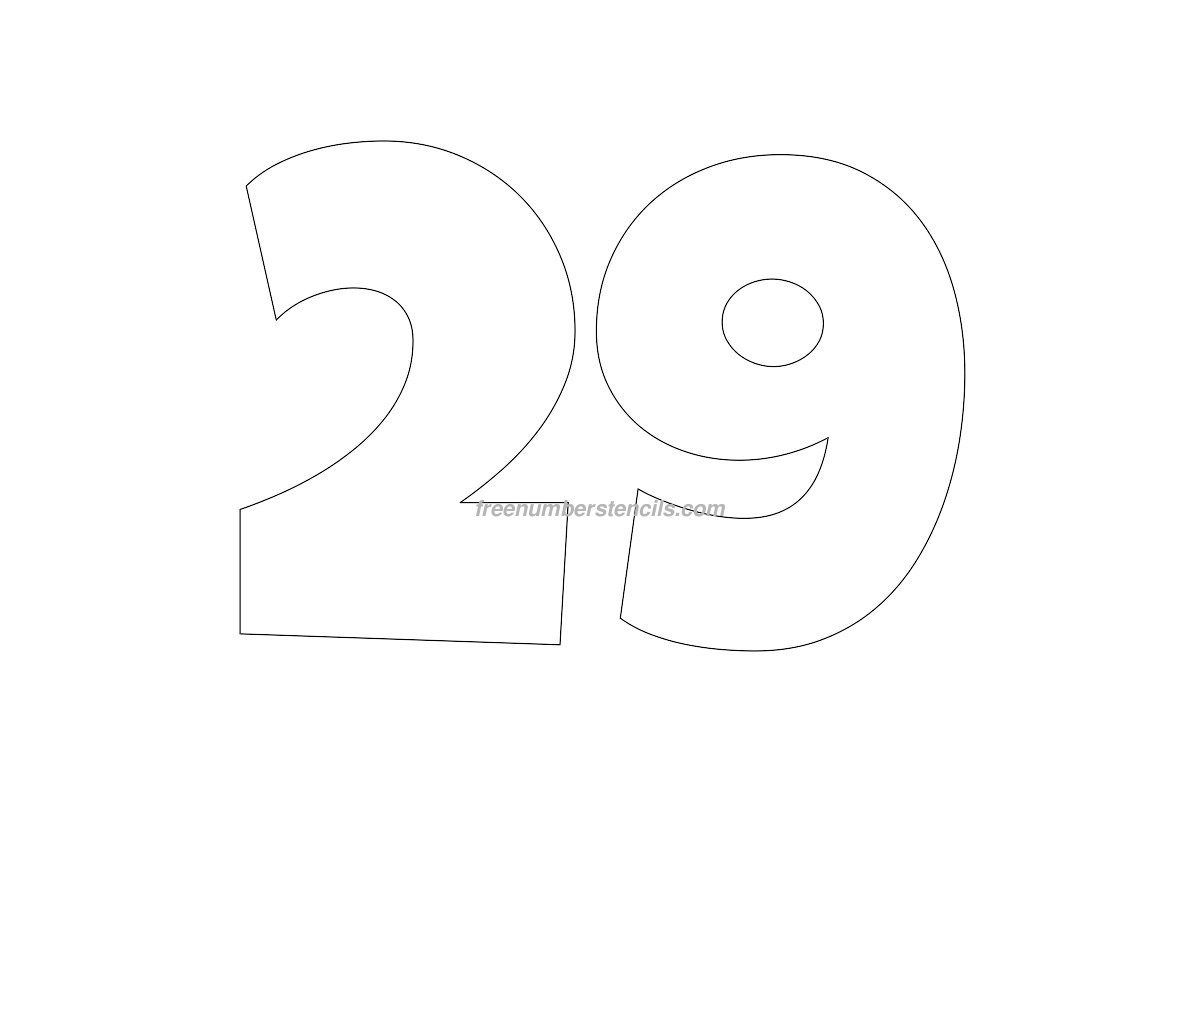 Free Giant 29 Number Stencil - Freenumberstencils.com